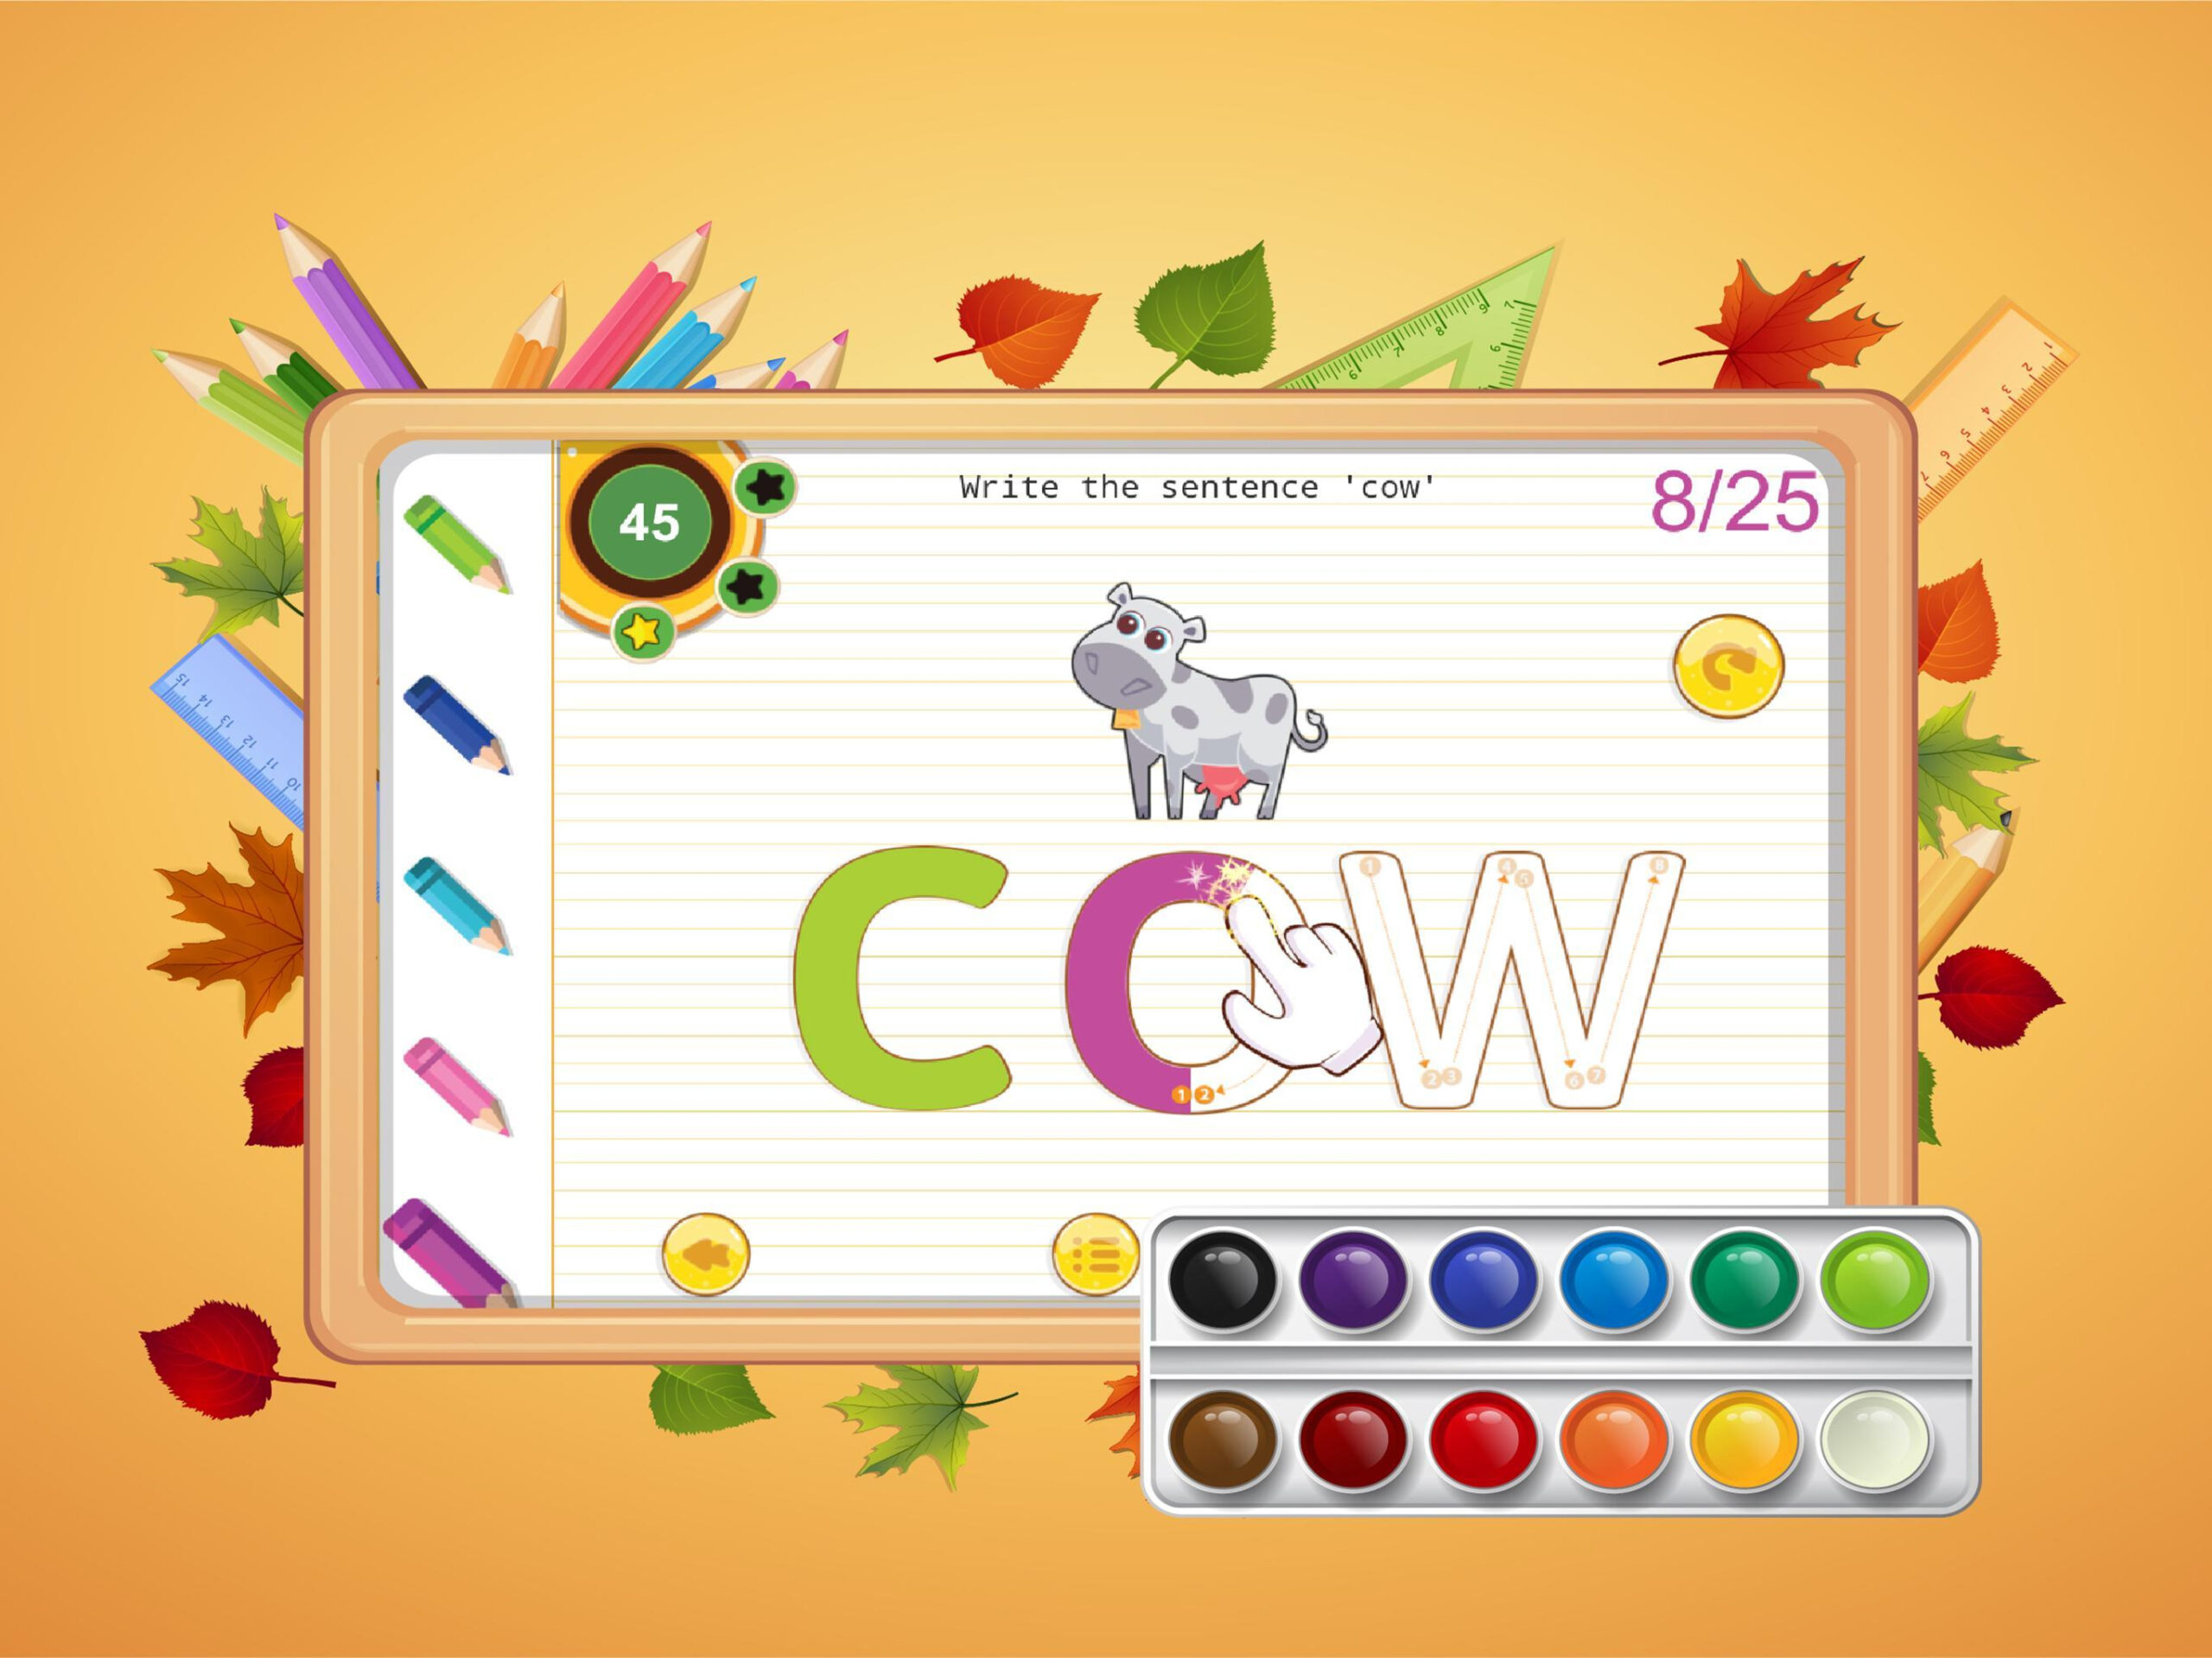 Abc Kids Writing Alphabet - Trace Handwriting App For intended for Alphabet Tracing App